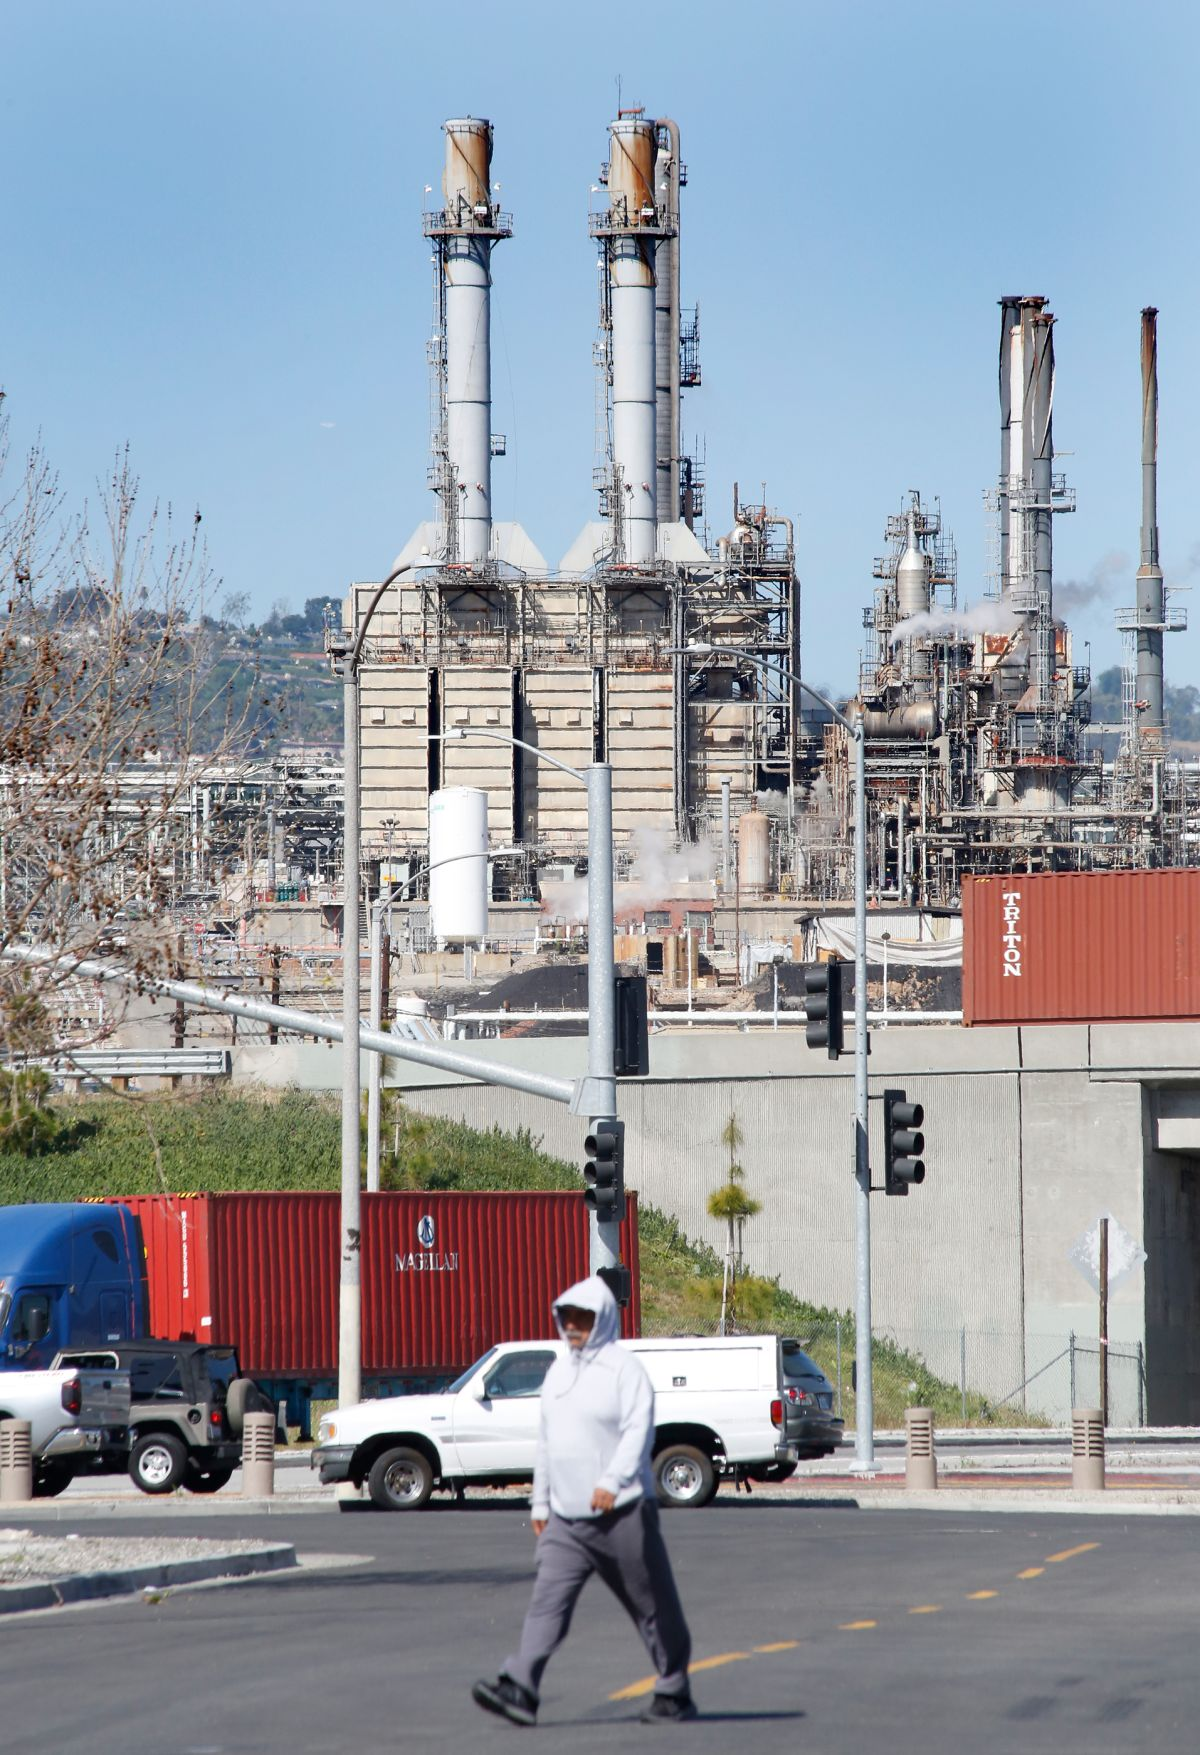 To protect public health and fight environmental racism, LA City Council must end oil drilling in our neighborhoods